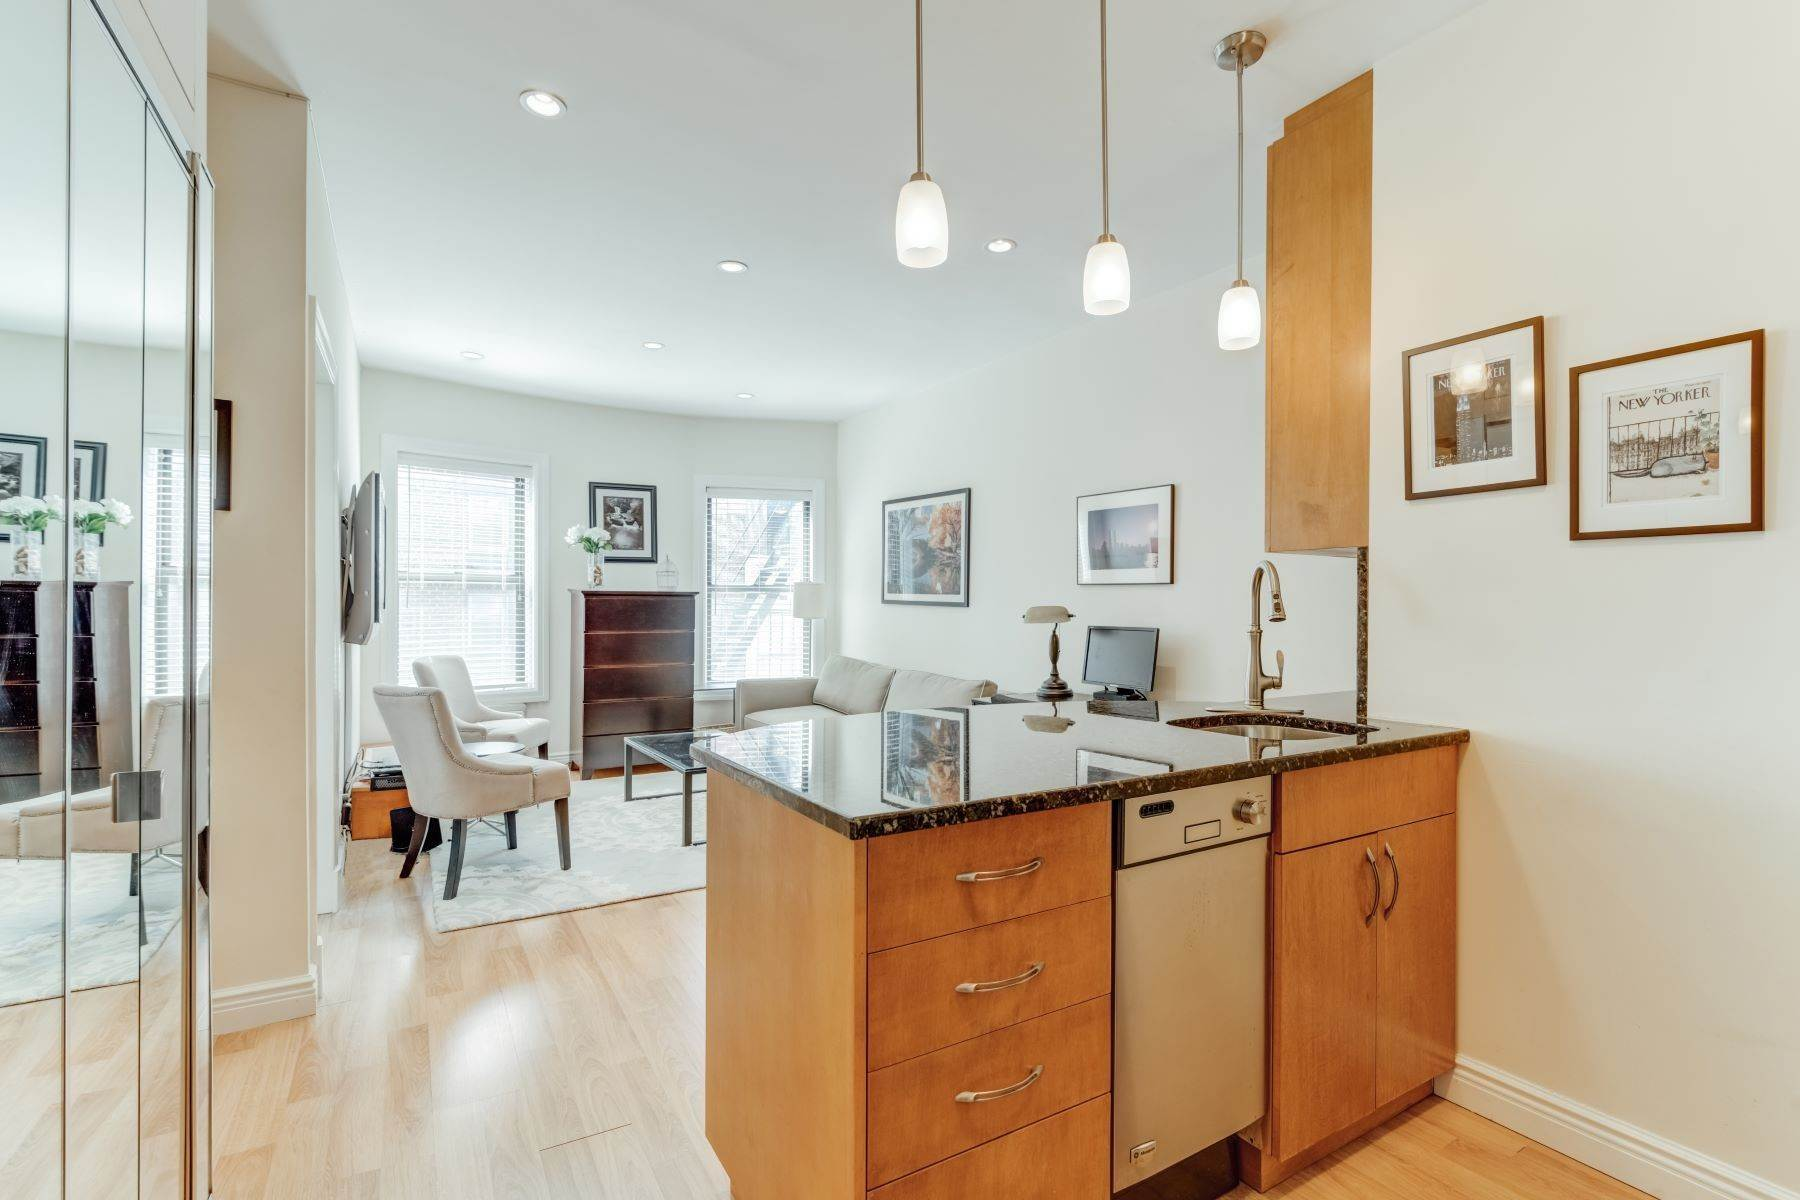 Co-op Properties for Sale at 160 East 91st Street, Apt 7H New York, New York 10128 United States